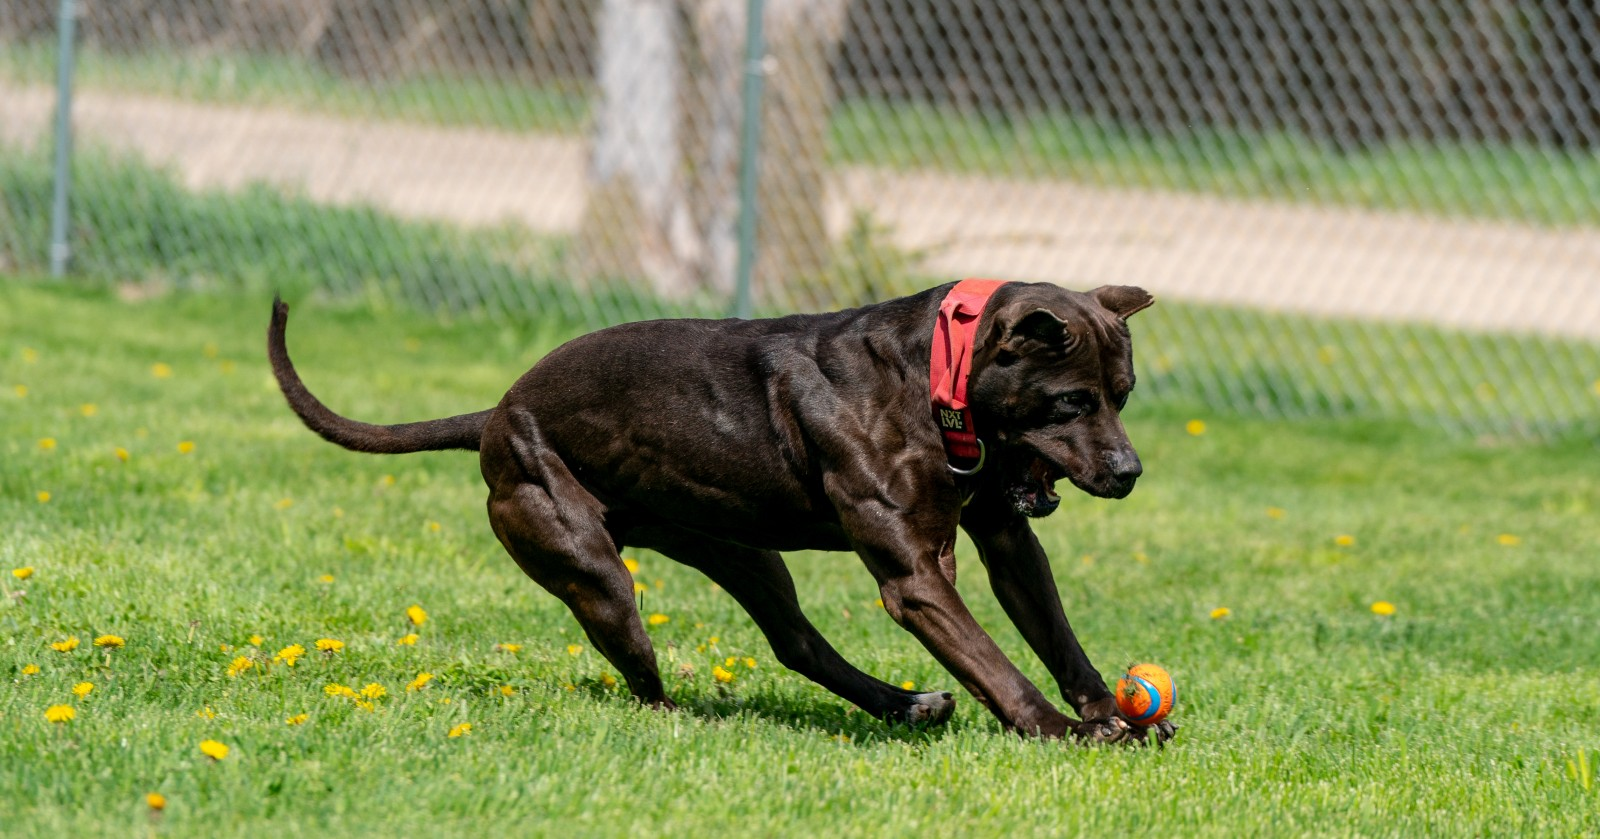 Unleashed Kennels Black XL pit bull Batman skidding to a sudden stop as he runs for a ball, shows off his muscle definition in this flexed pose.